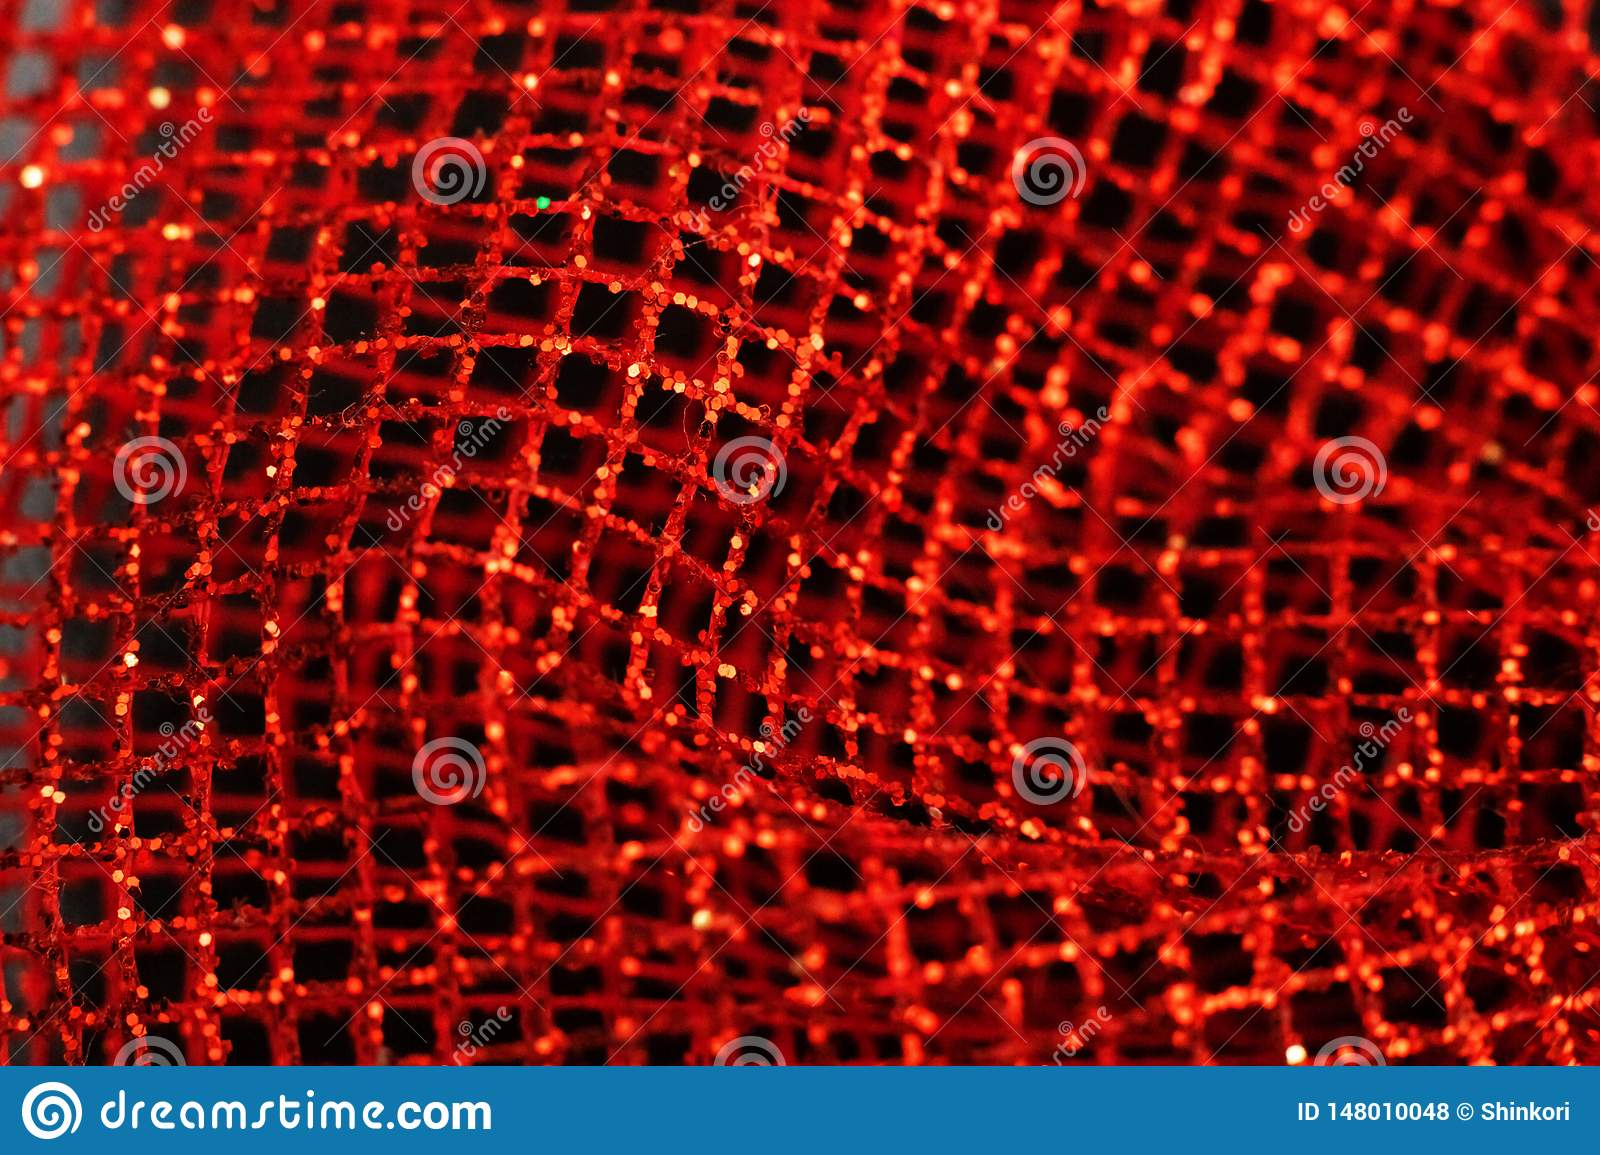 Red shiny mesh gift wrapping close up